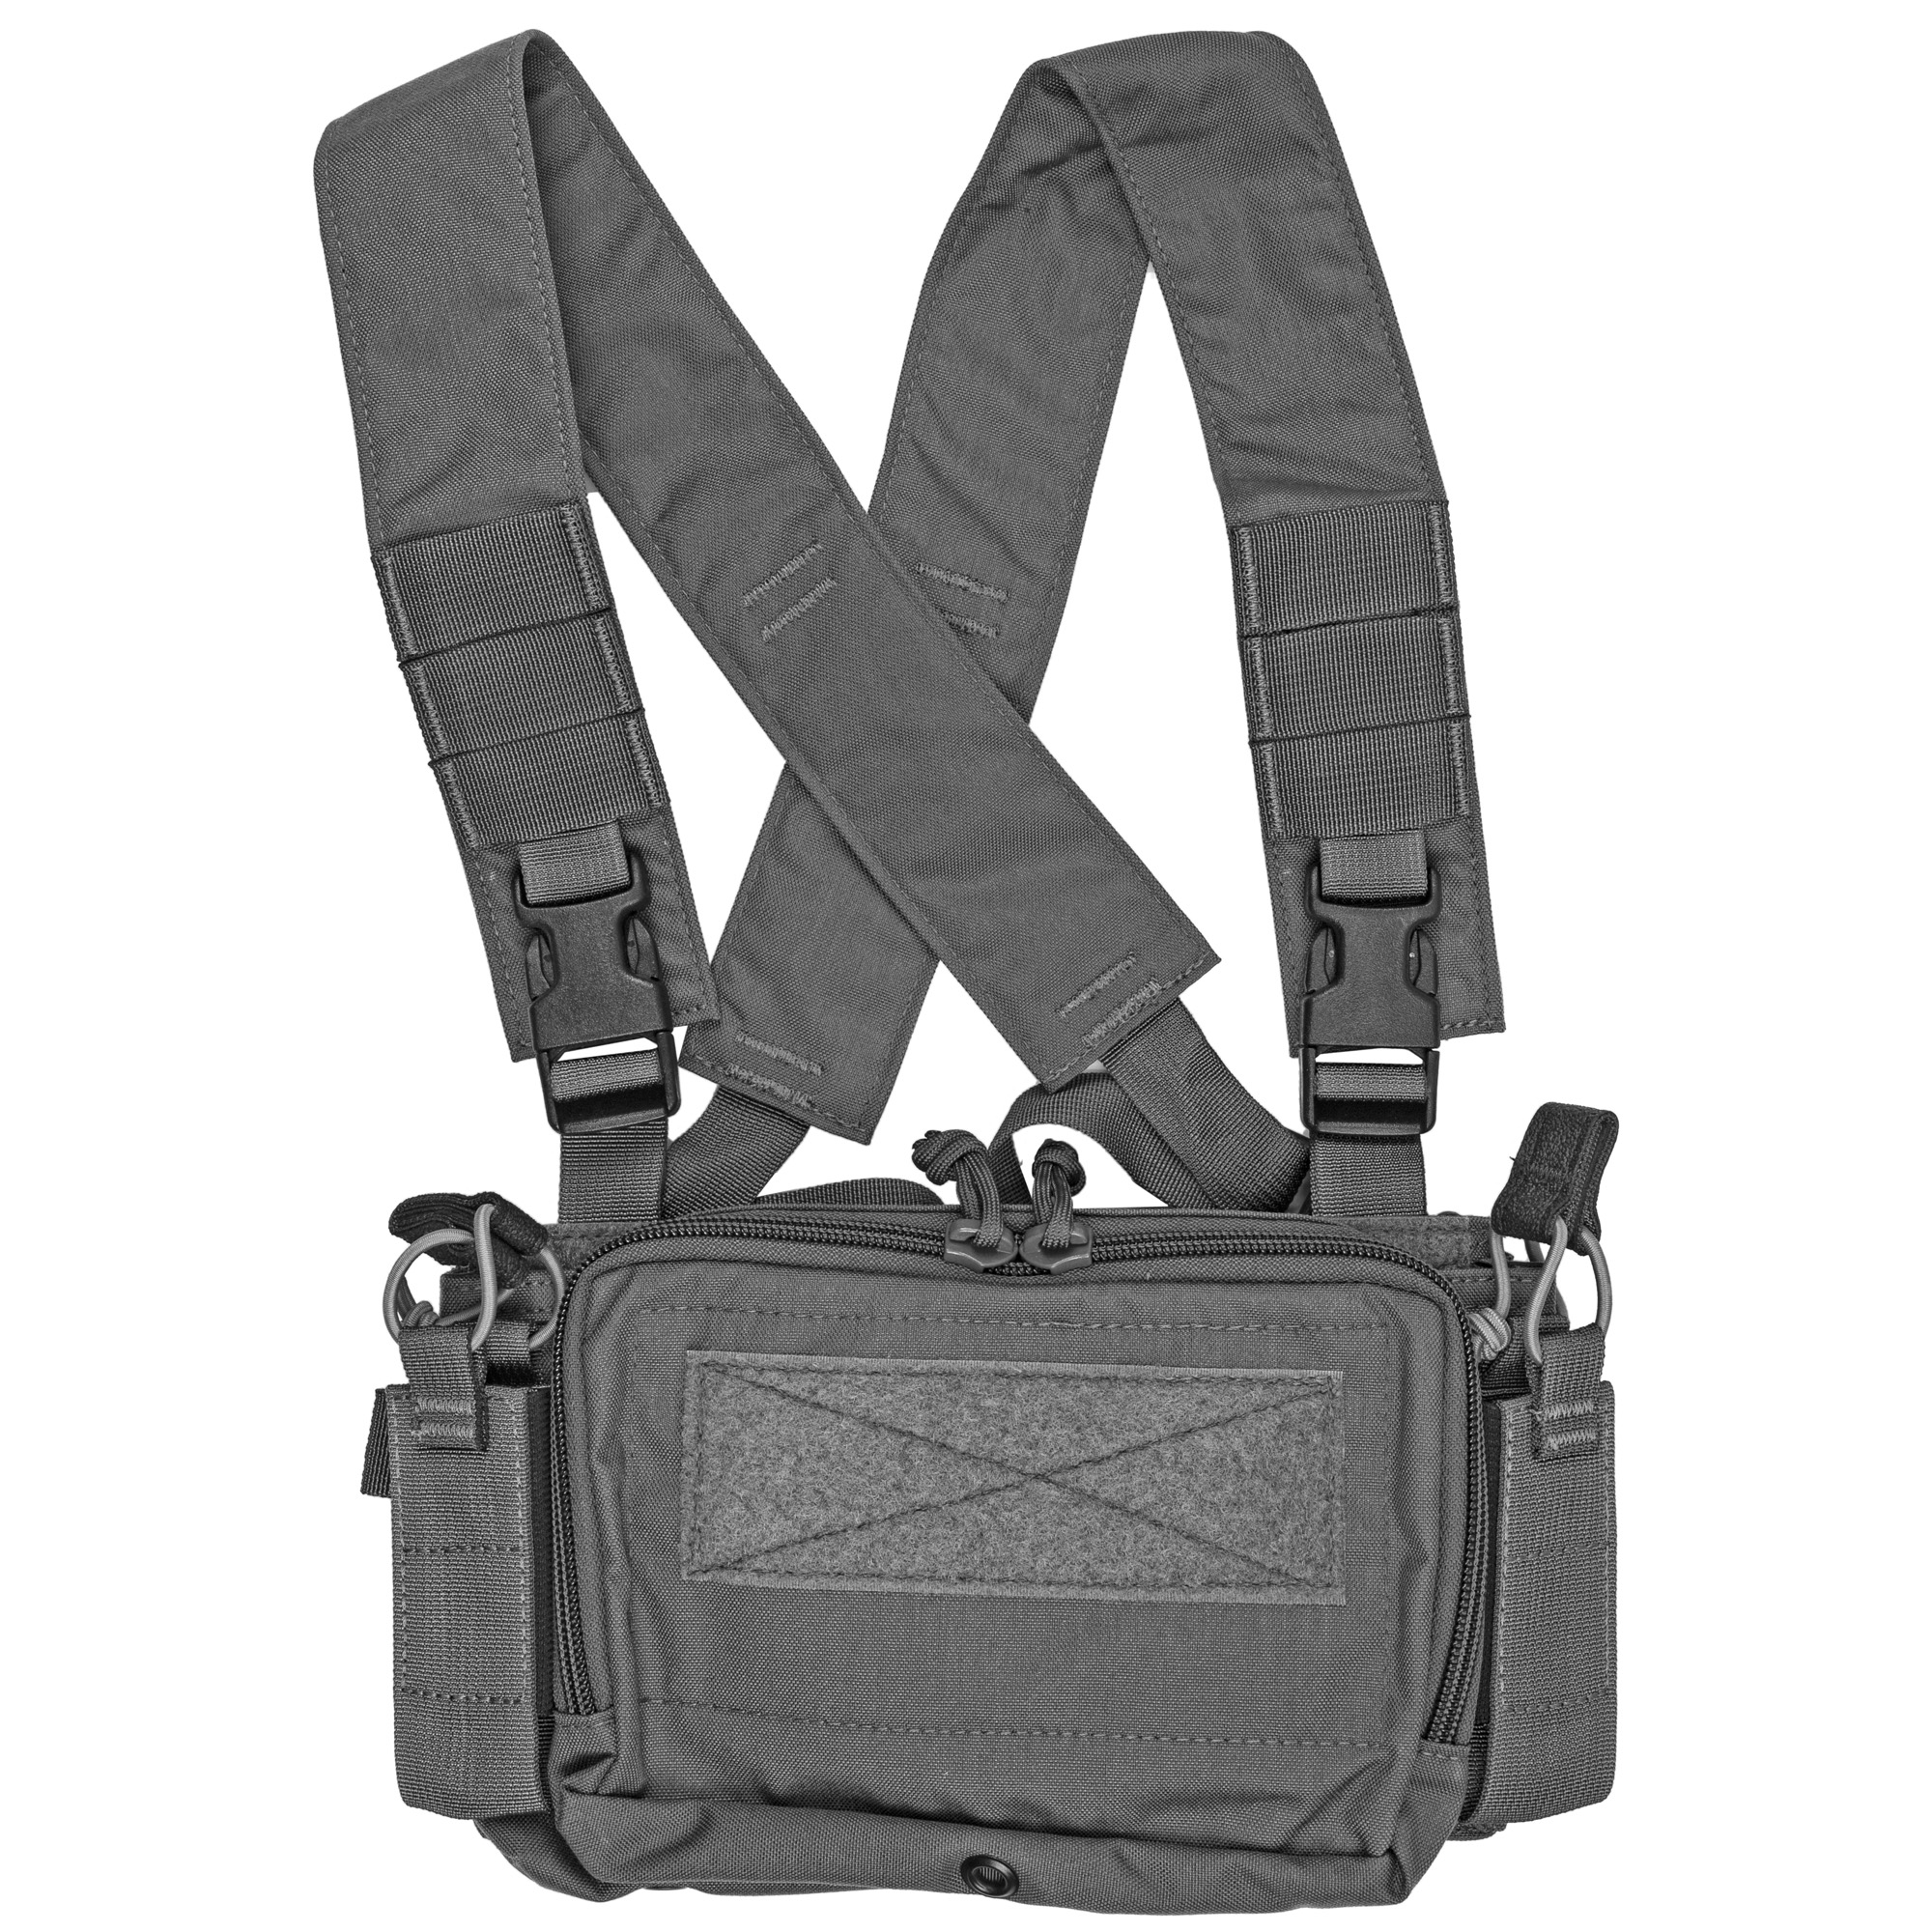 The NEW Disruptive Environments Chest Rig Micro has been designed to be completely adaptive to any mission. The new multi-mission inserts allow the operator to run any configuration of magazine they choose by simply swapping out the insert for another via Velcro. The Micro design is small but packs a lot with redesigned storage capabilities and still works seamlessly with D3CR accessories like their other chest rigs. The addition of two side mounted Multi-Mission pouches allows the rig to be more streamlined and carry mission essentials where they count. The full field of Velcro allows the rig to be outfitted with the latest D3CR accessories as well as assist in the full contact connection with plate carriers.